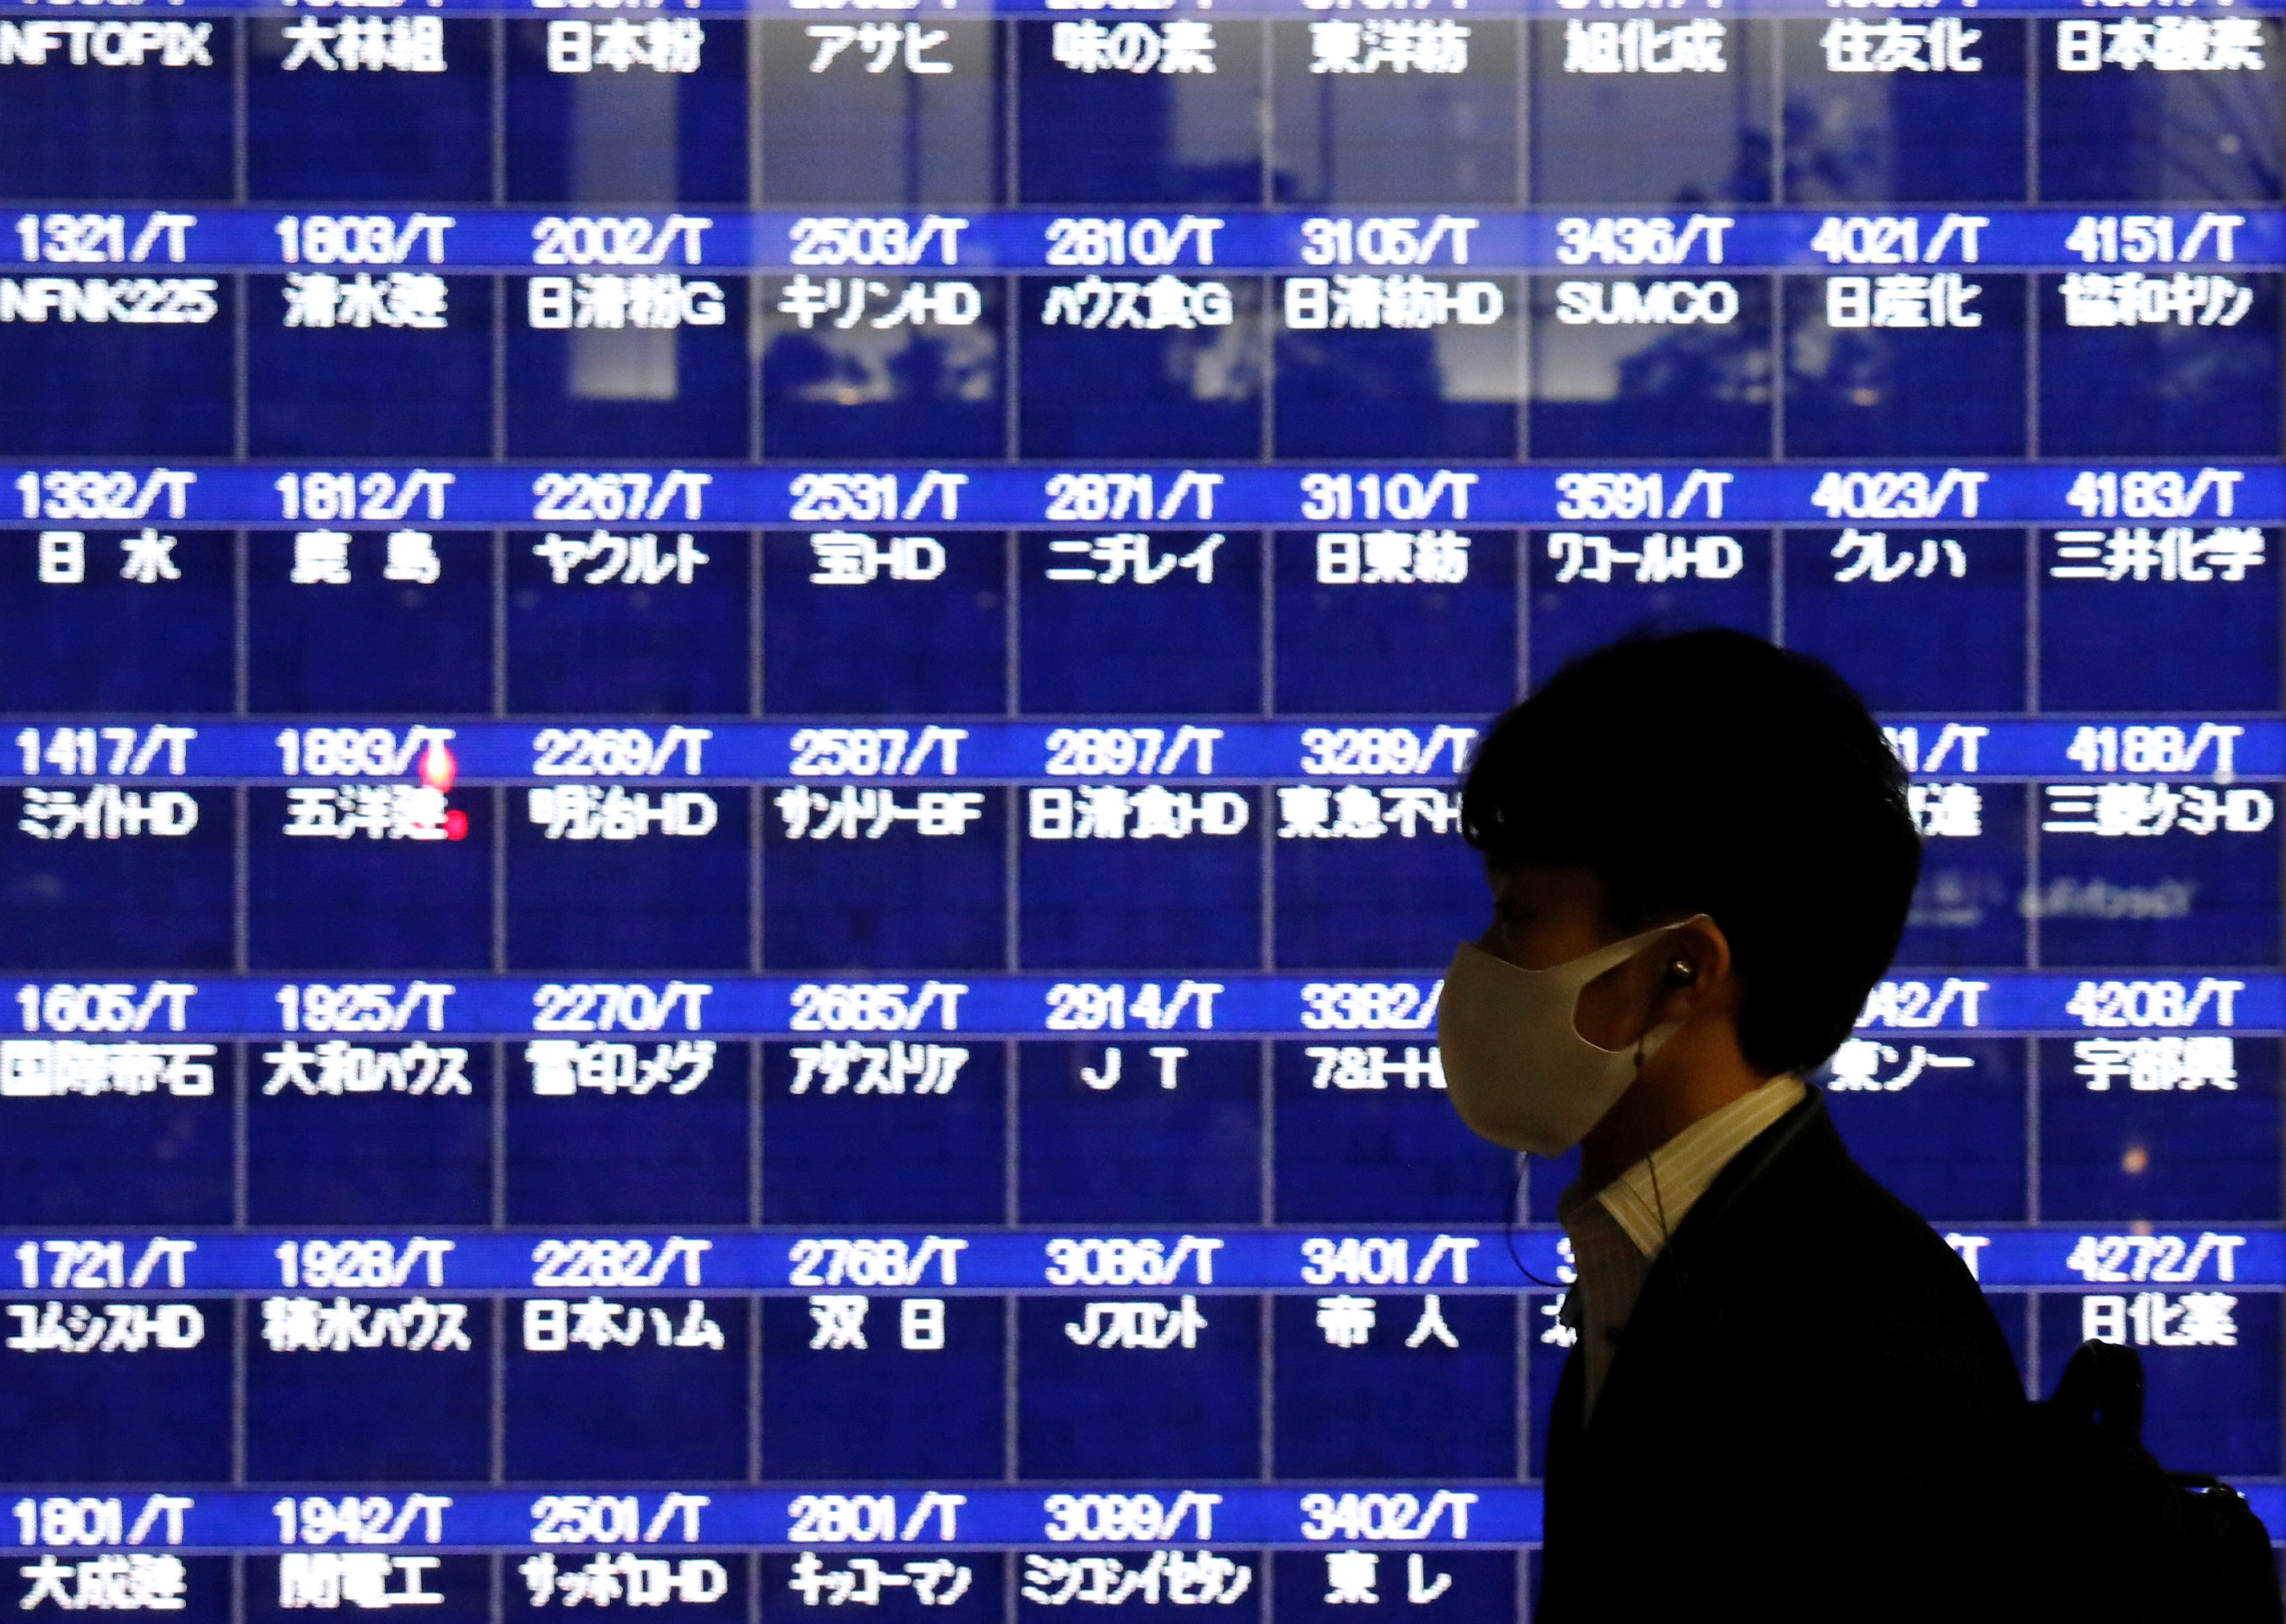 A passerby wearing a protective mask is silhouetted in front of a screen of blank prices on a stock quotation board after Tokyo Stock Exchange temporarily suspended all trading due to system problems, amid the coronavirus disease (COVID-19) pandemic, in Tokyo, Japan October 1, 2020.  REUTERS/Issei Kato - RC2M9J9BFFEH